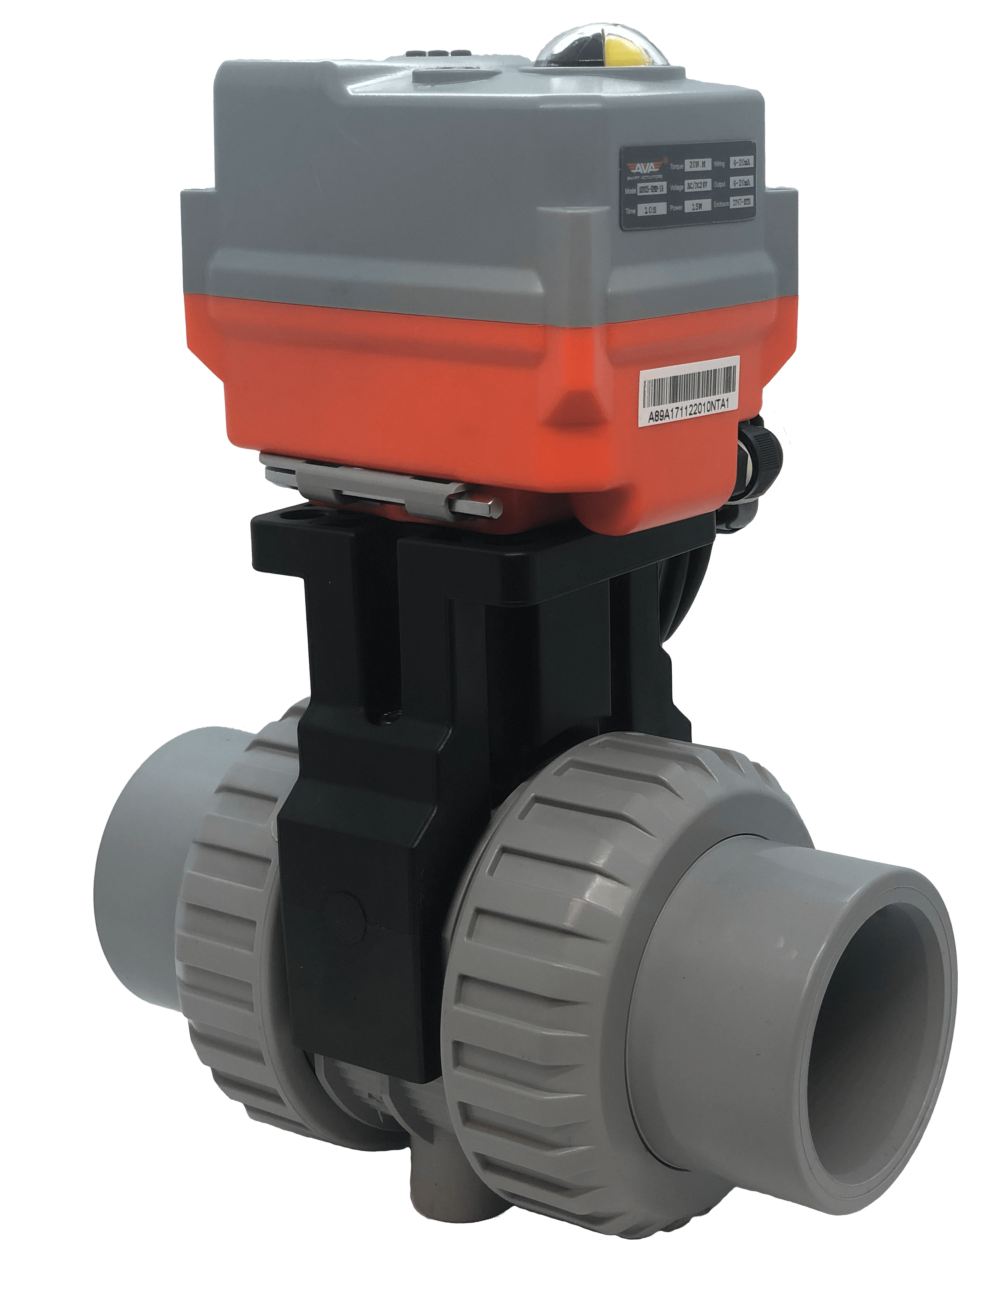 Cepex Extreme Motorized CPVC Ball Valve with AVA Electric Actuator from AVS